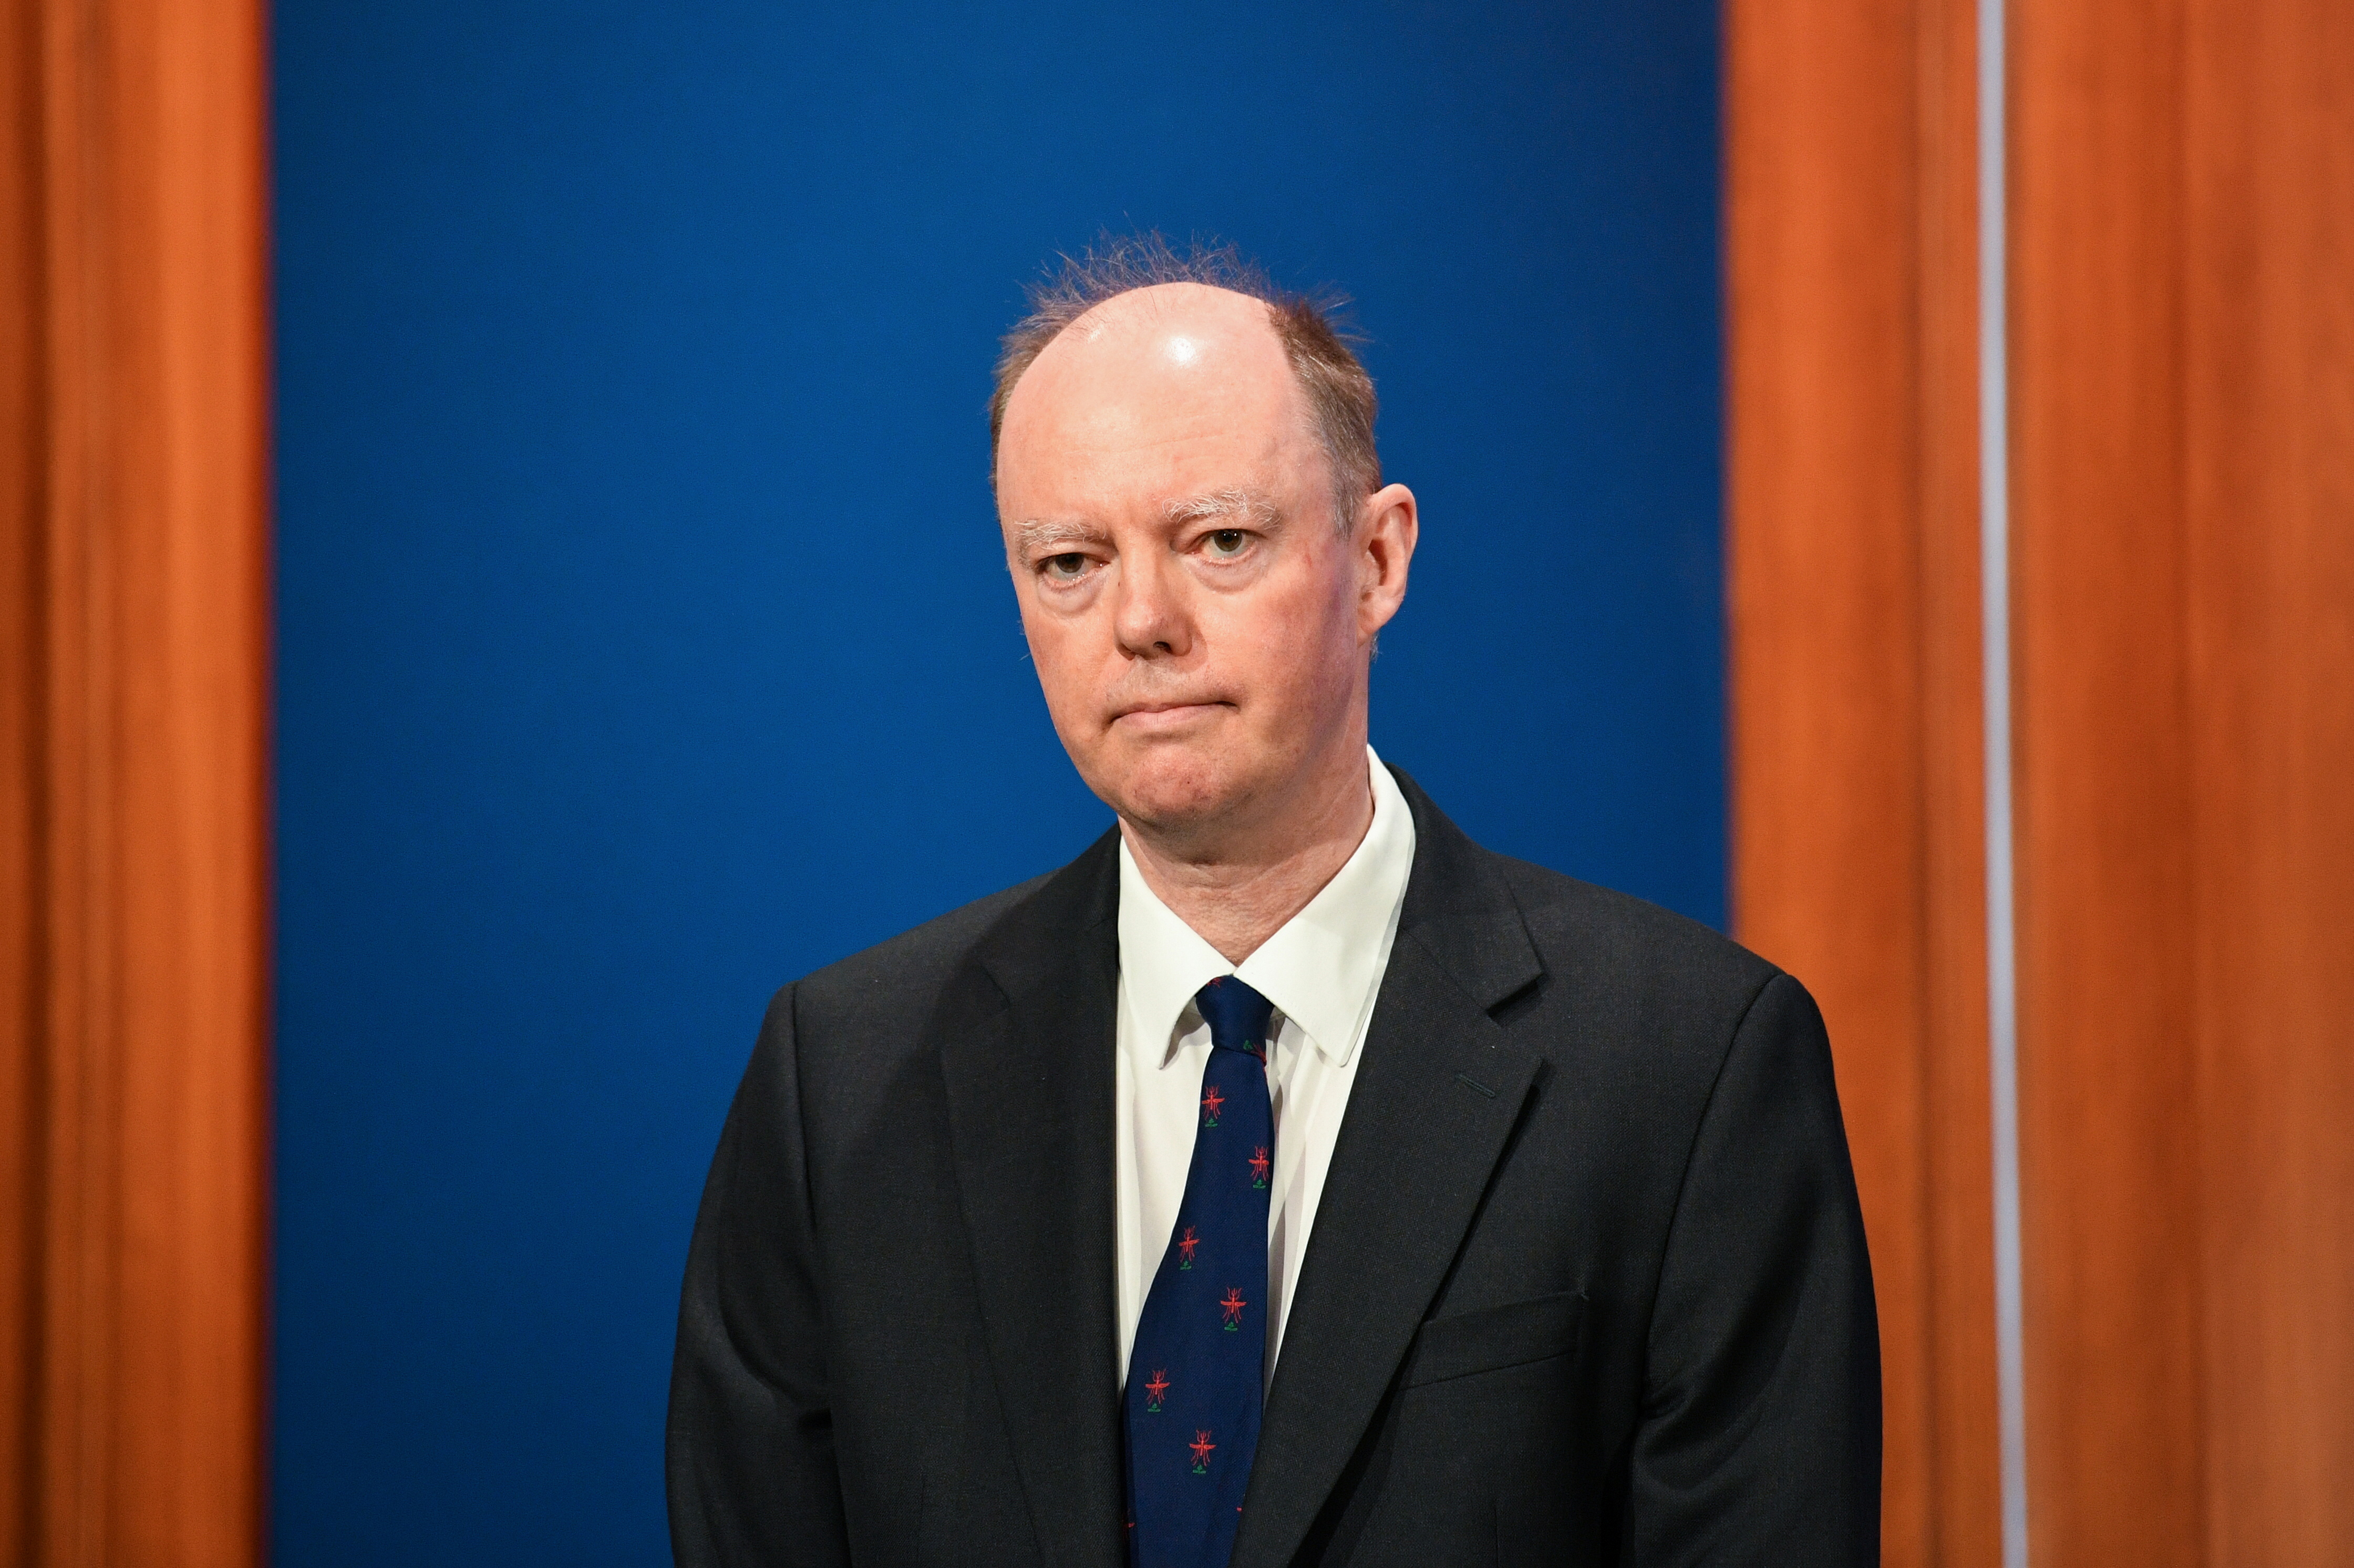 Britain's Chief Medical Officer for England Chris Whitty attends a news conference on the coronavirus disease (COVID-19) pandemic, in London, Britain April 5, 2021. Stefan Rousseau/Pool via REUTERS